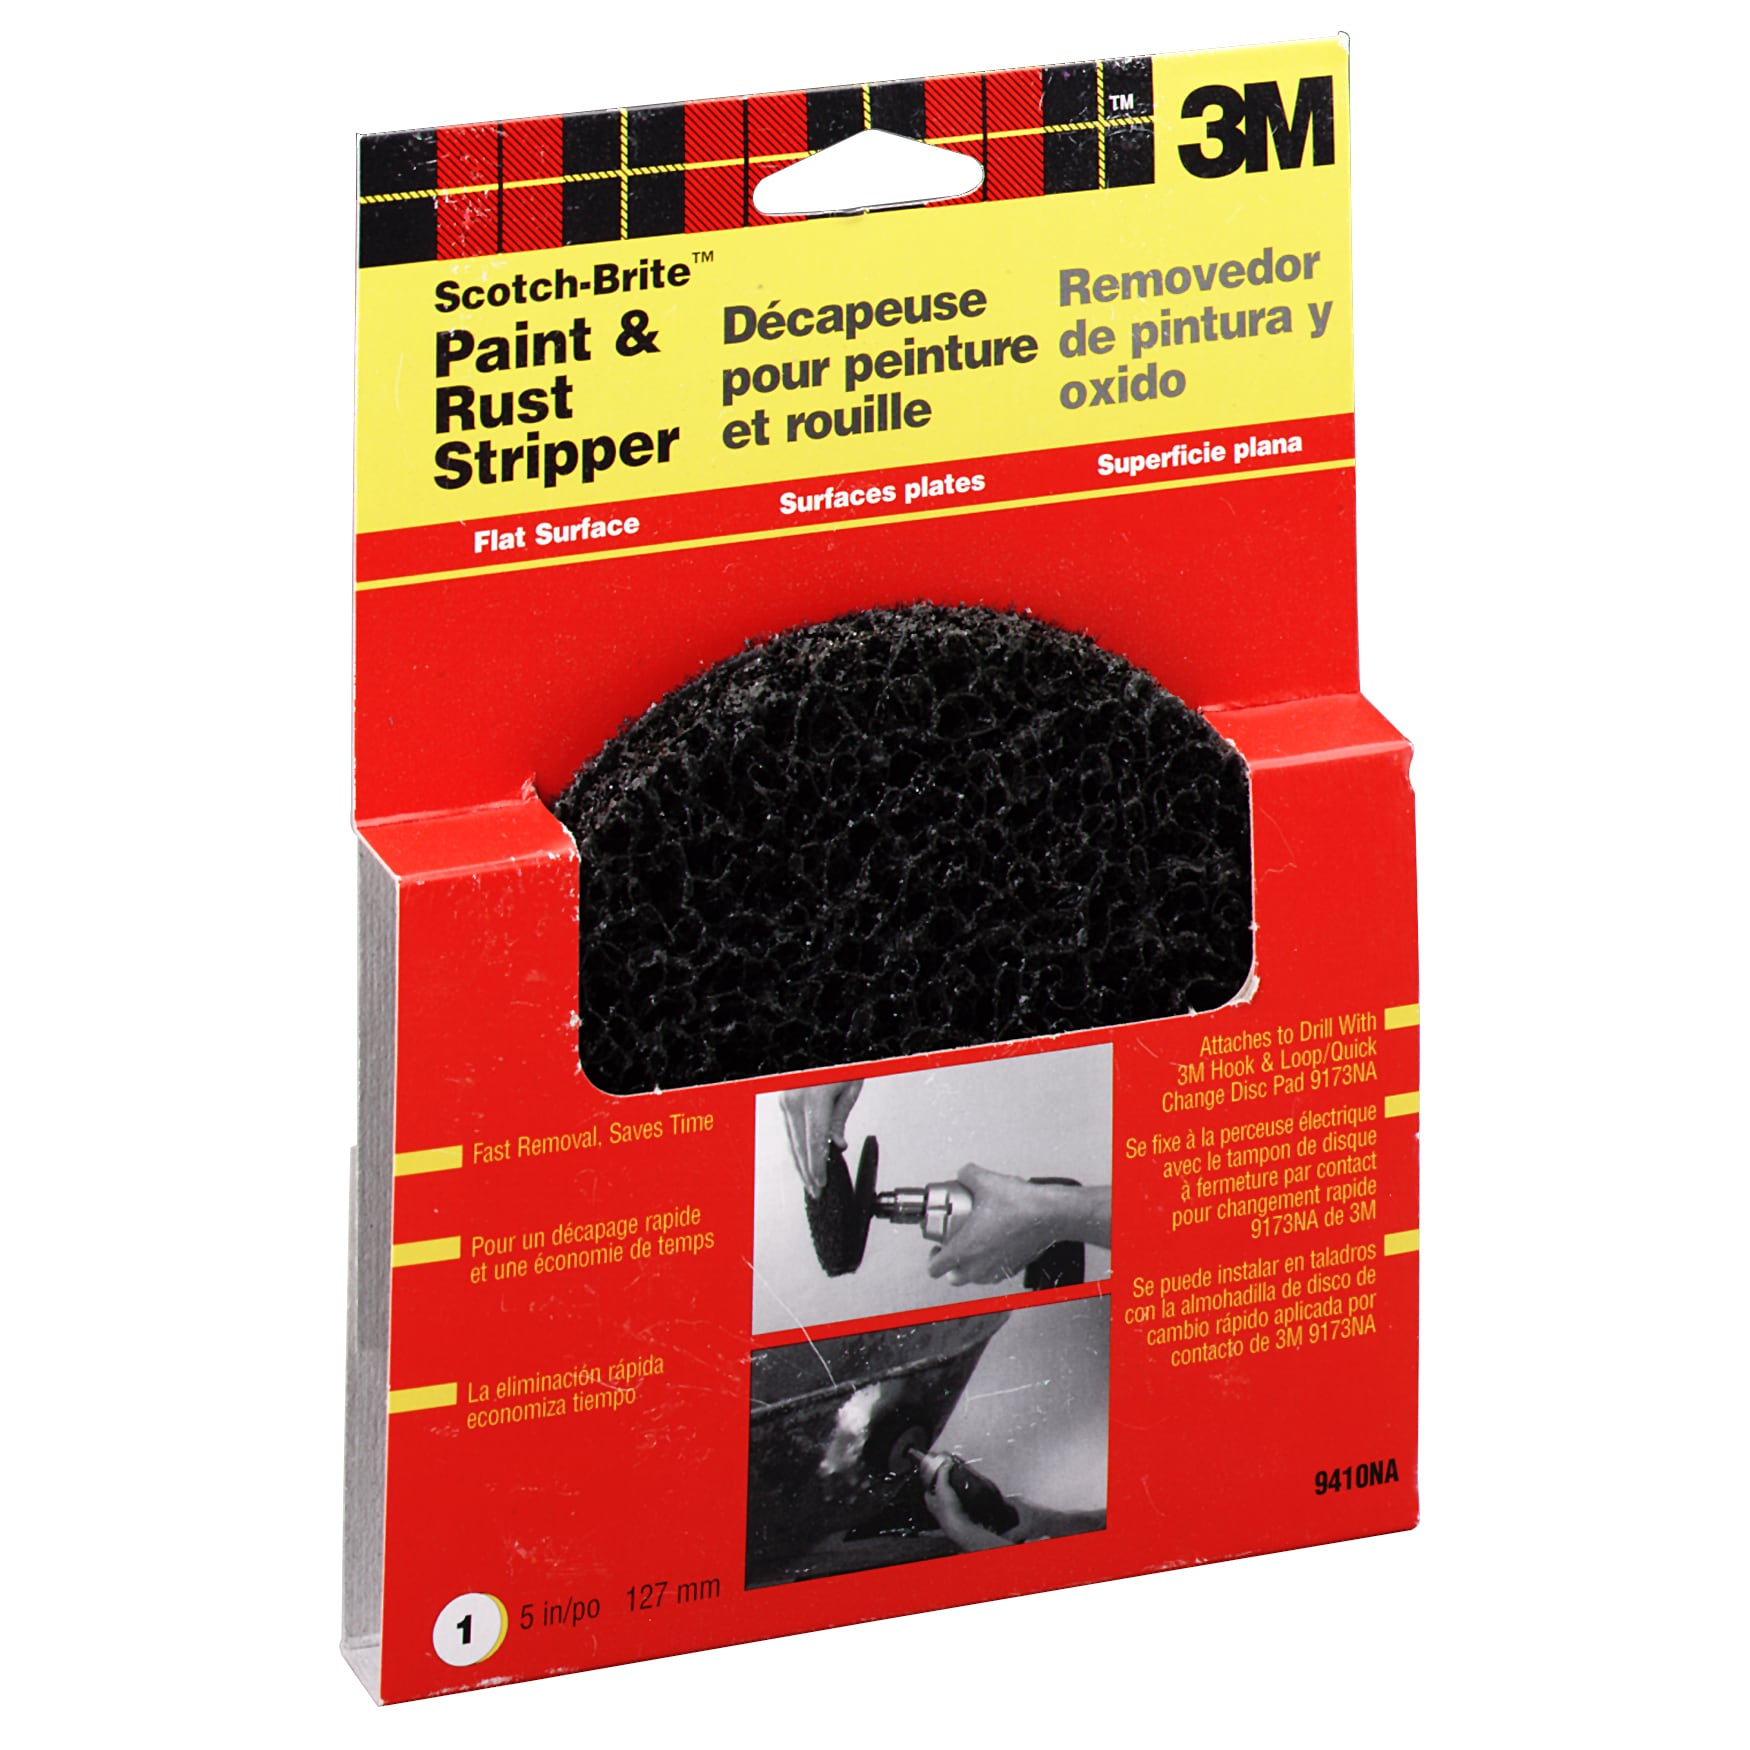 "3M 9410NA 5"" Scotchbrite Paint & Rust Stripper (Sandpaper..."